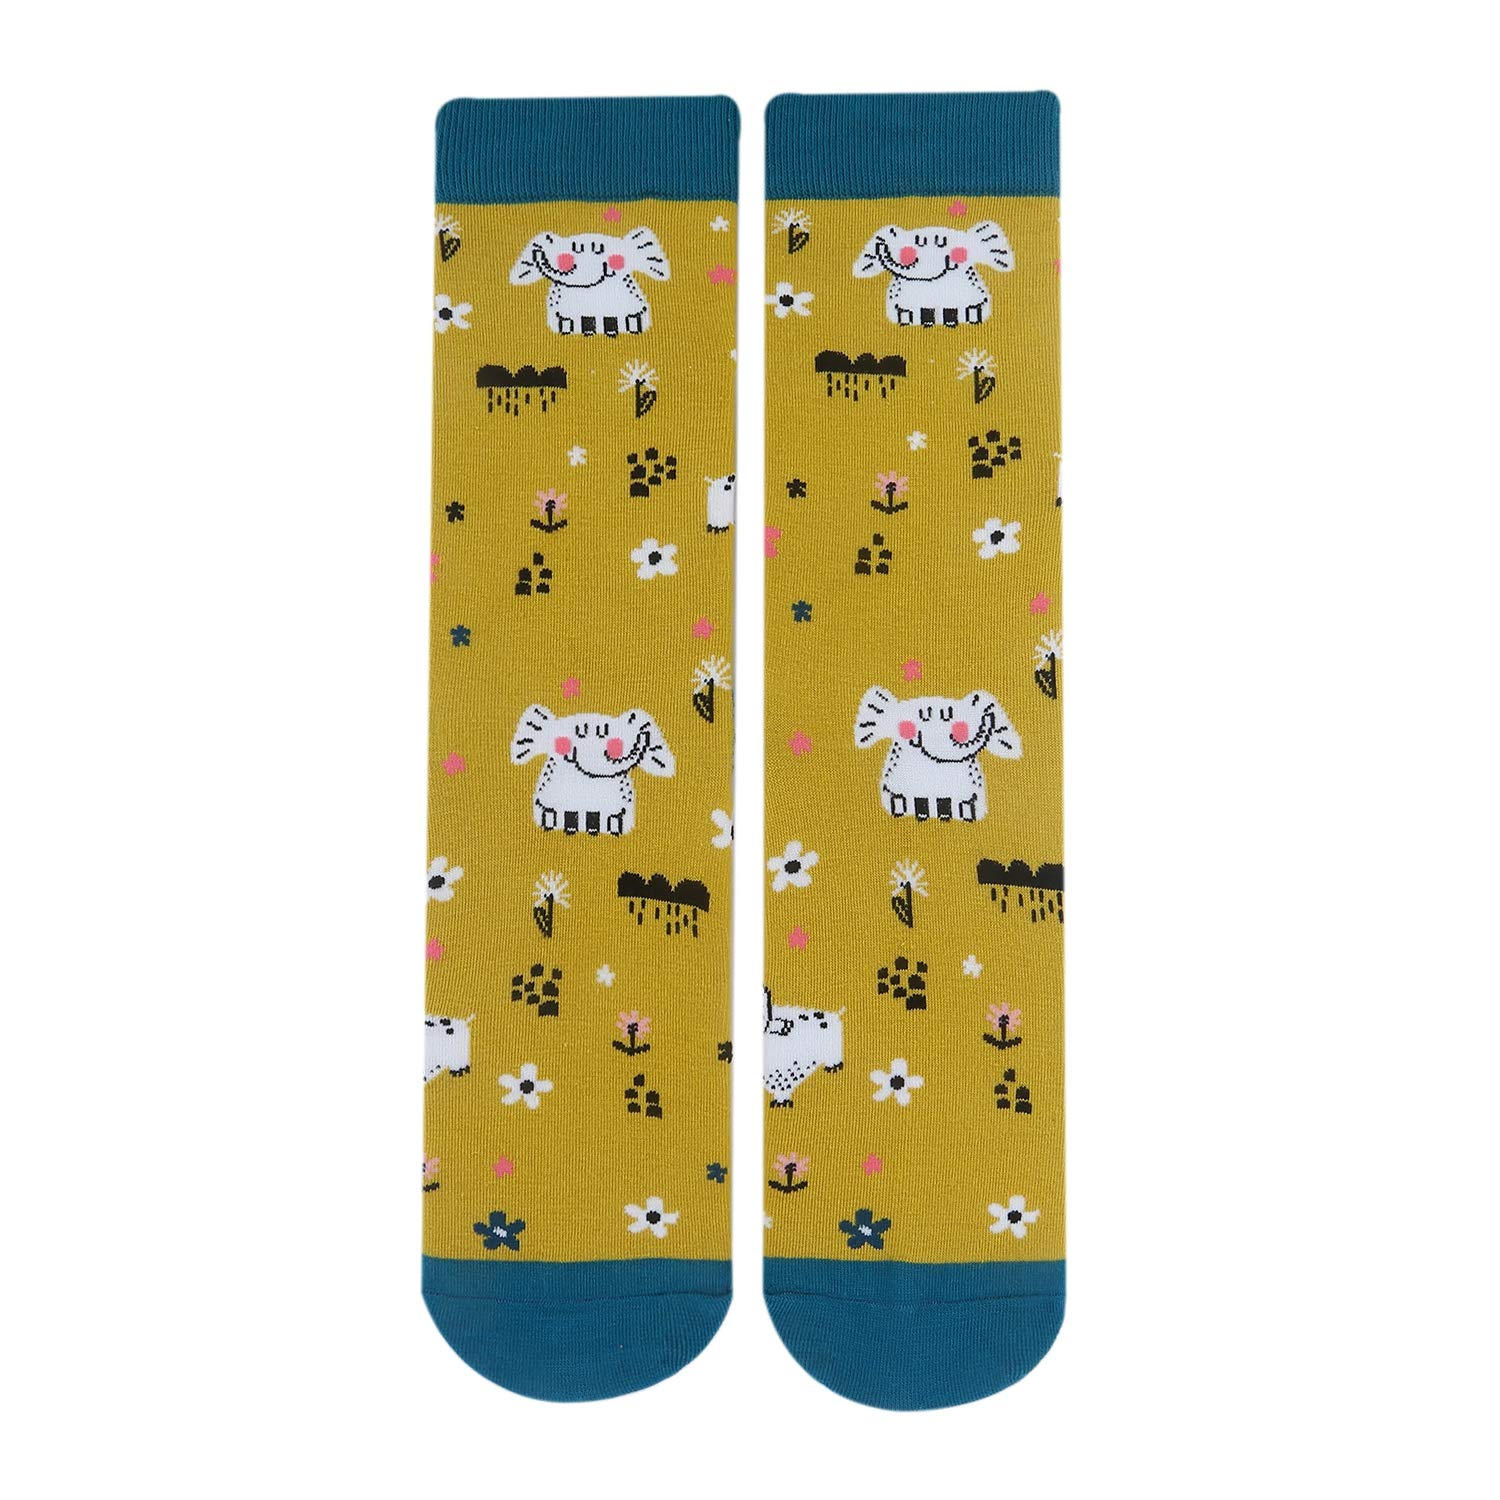 Womens Novelty Elephant Crew Socks Flowers Colorful Funky Patterned Casual Dress Socks